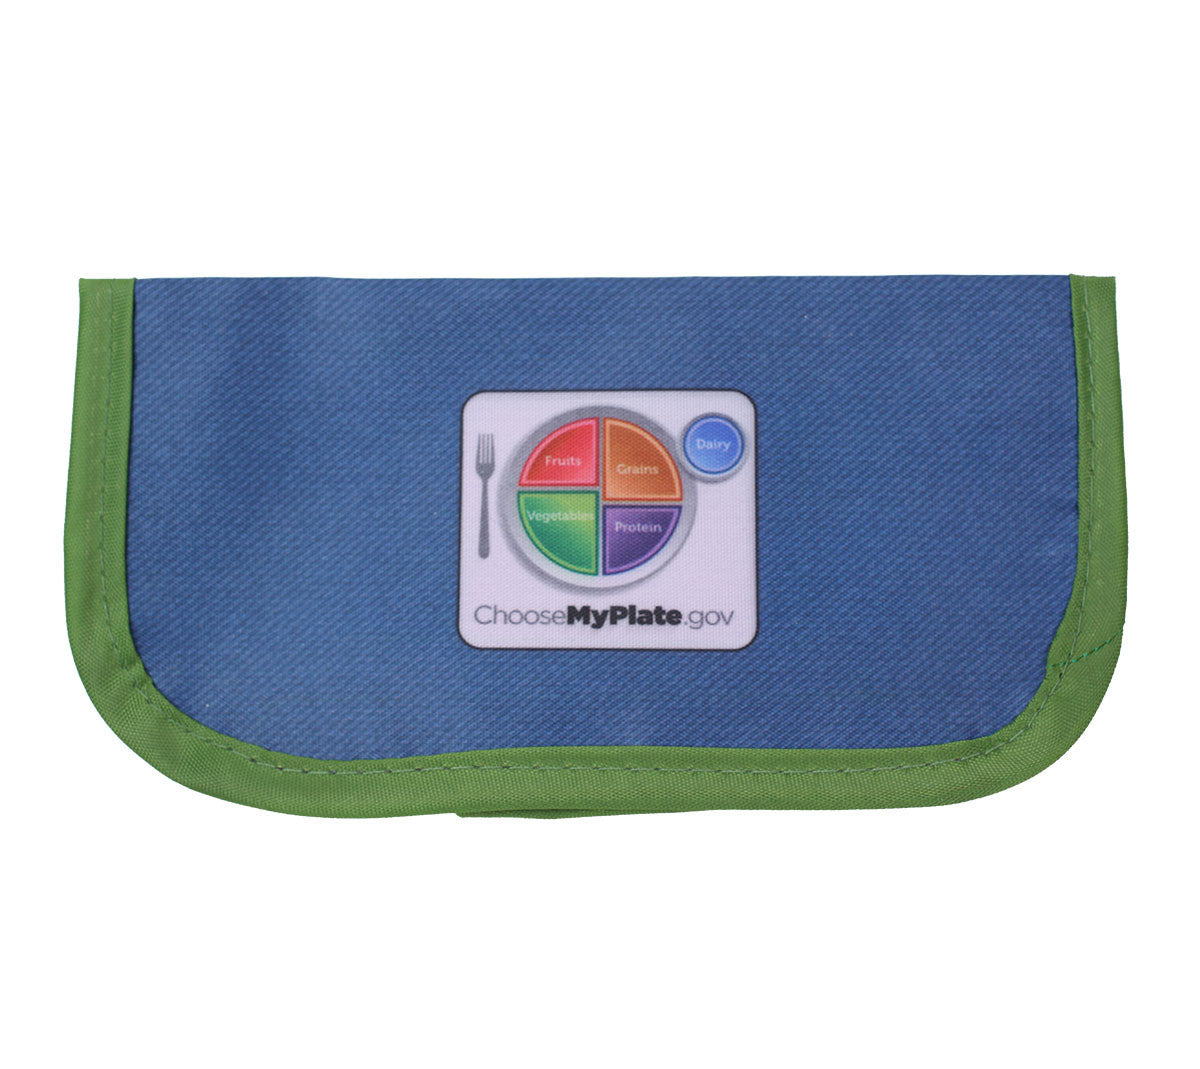 Fresh Baby's MyPlate snack bag is perfect for packing a healthy snack or lunch box side.